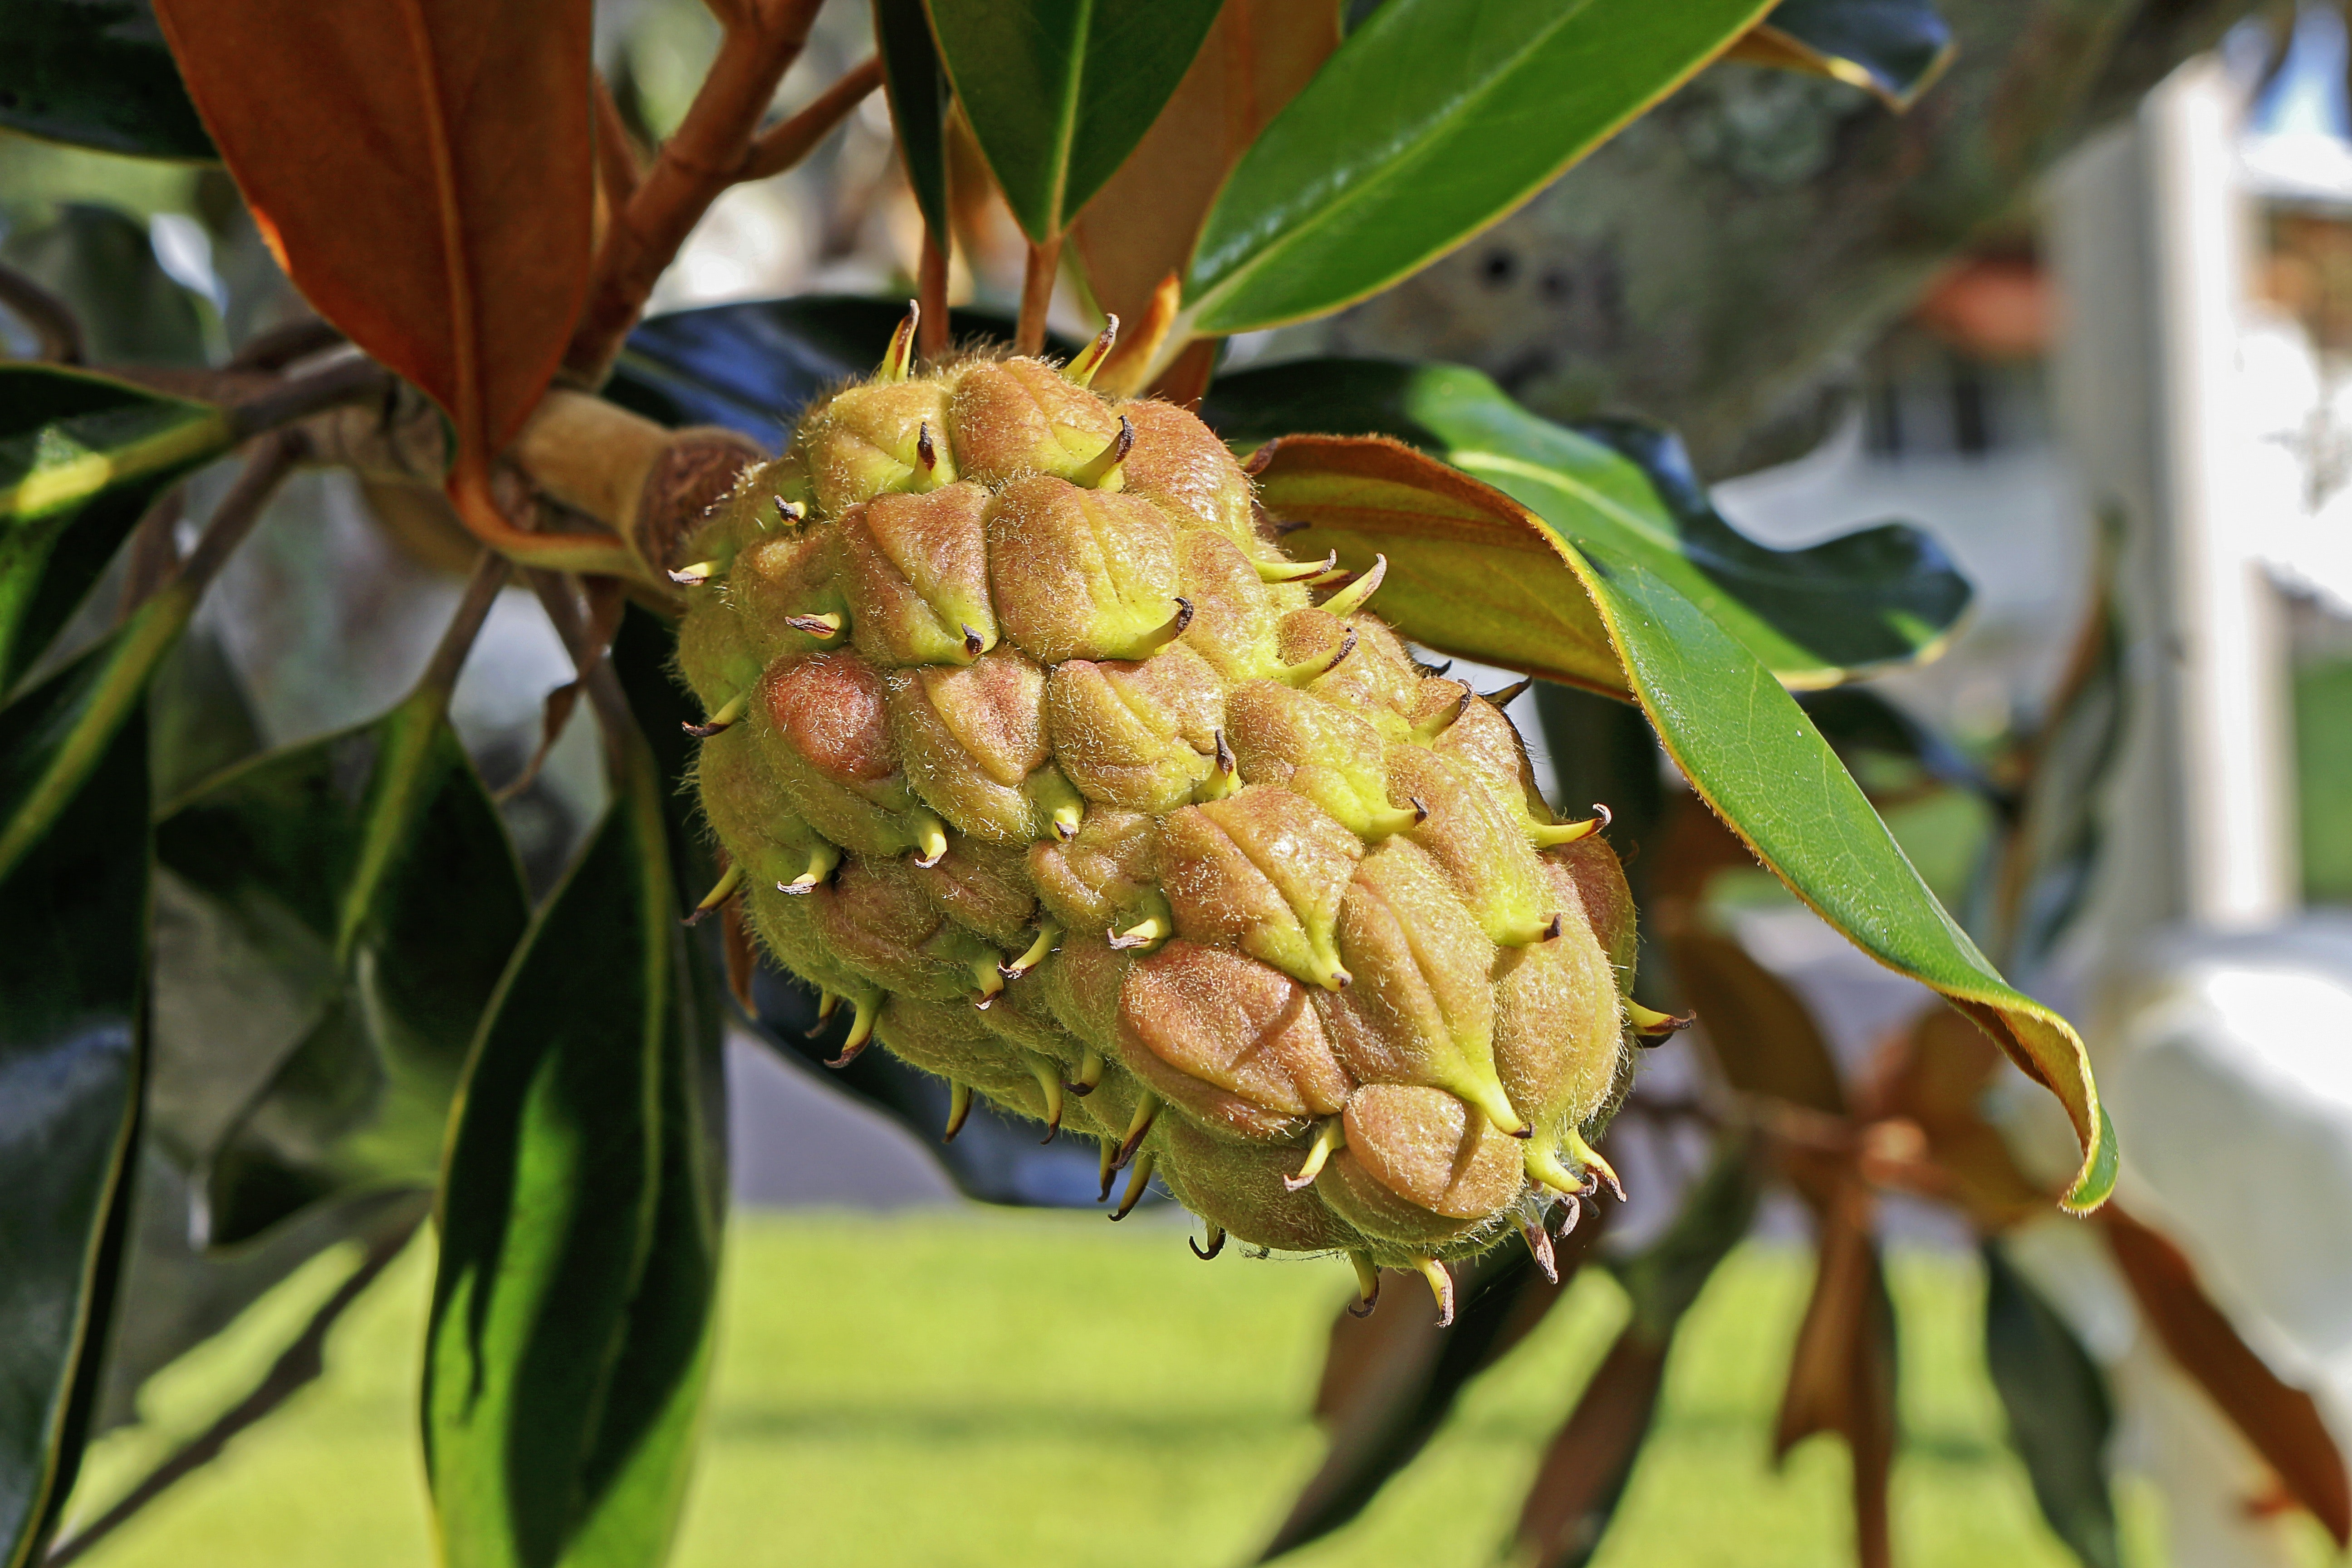 Green Fruit, Magnolia, Leaves, Outdoors, Plant, HQ Photo